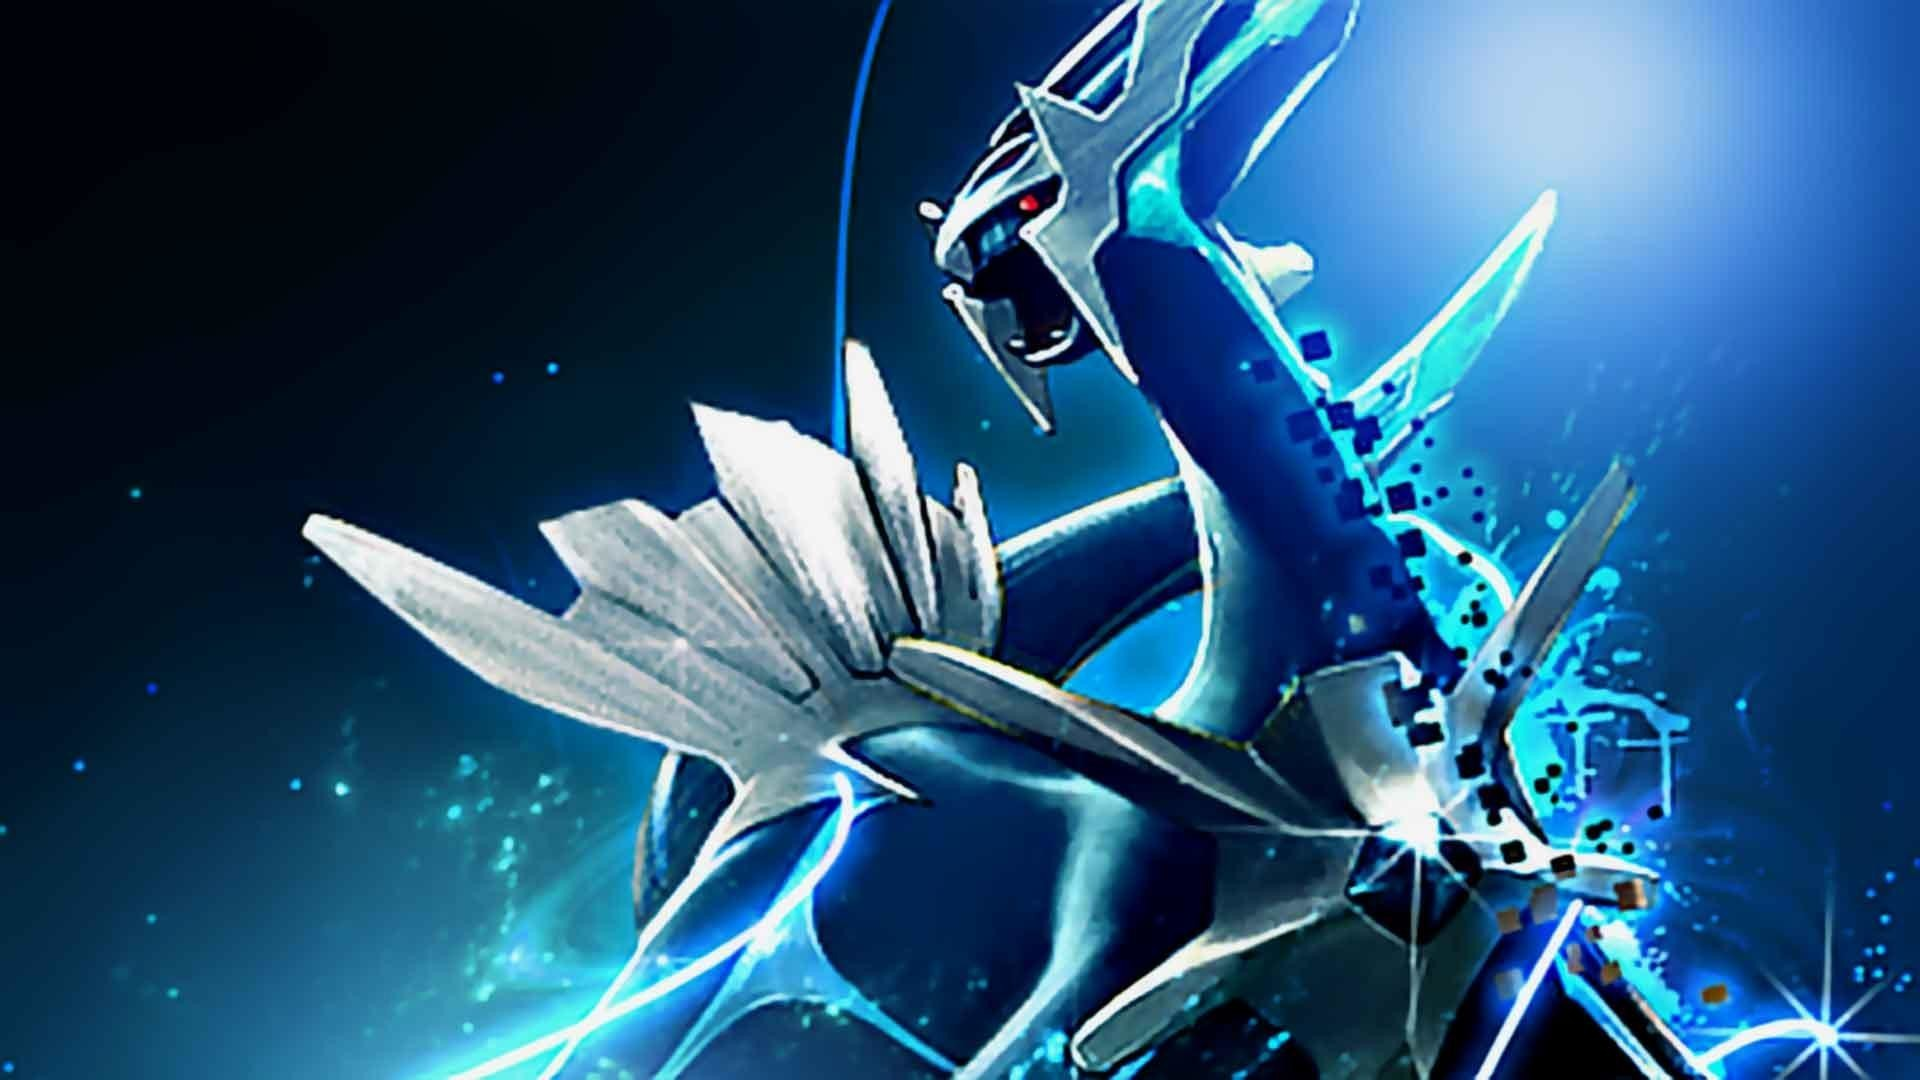 Res: 1920x1080, Shiny Lucario Wallpaper by Reitrahc on DeviantArt .